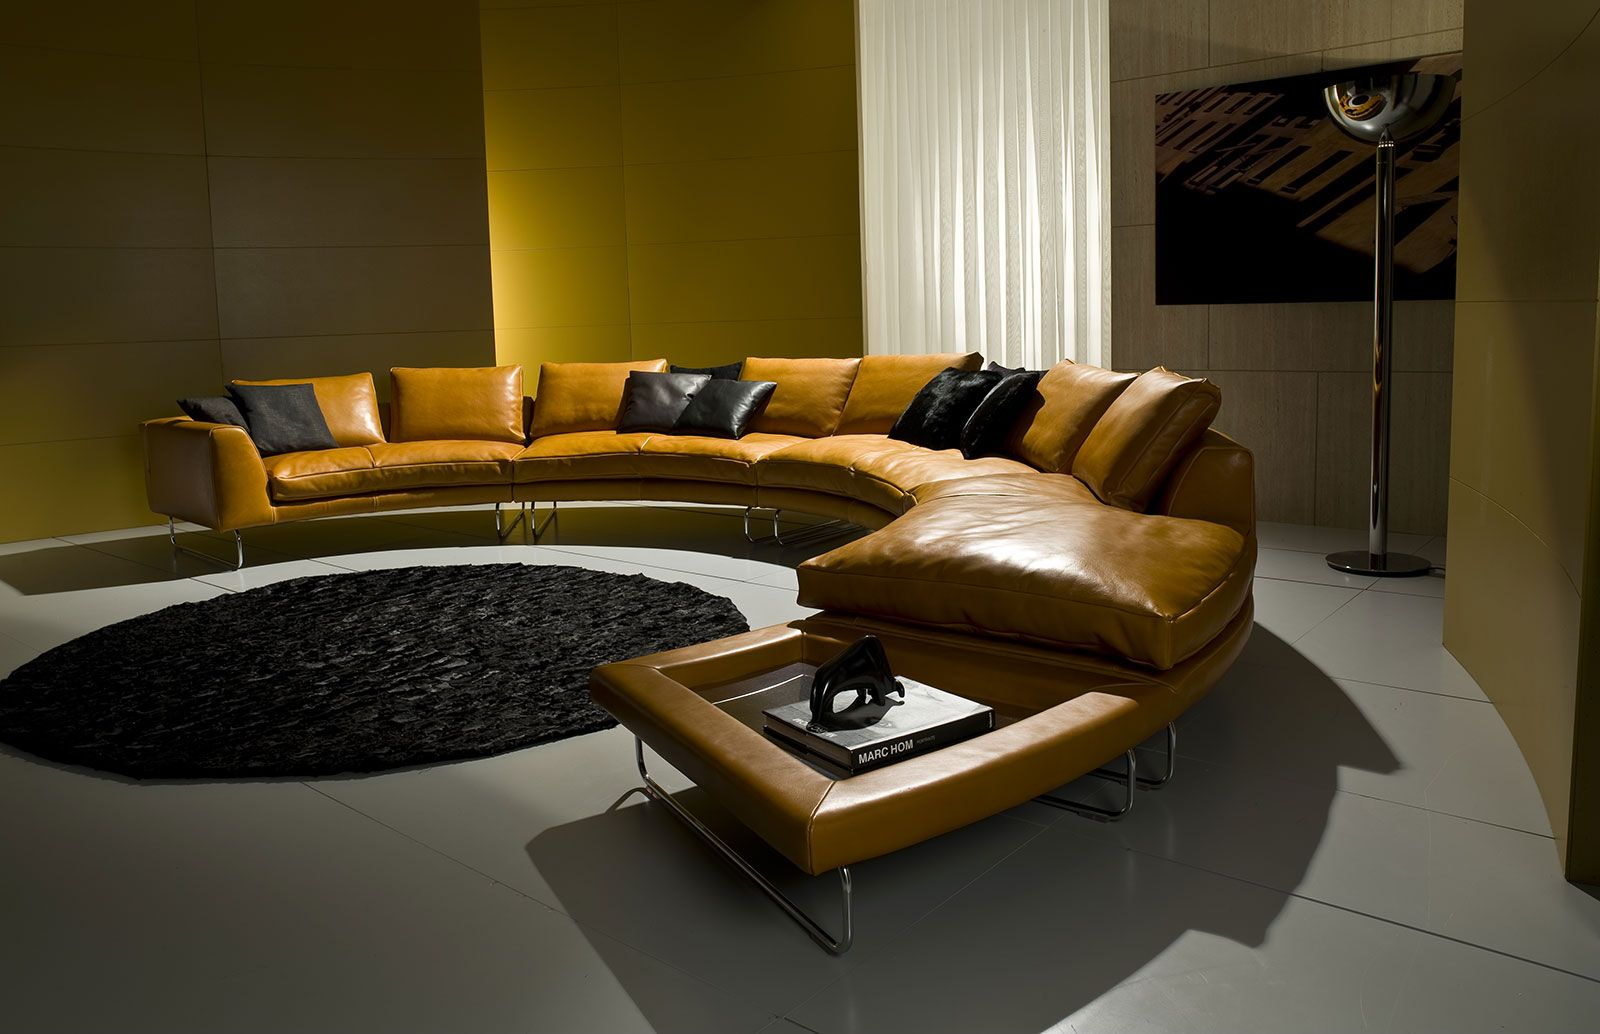 Add look round leather sofa 517 x 308 designer mauro lipparini sofa with solid